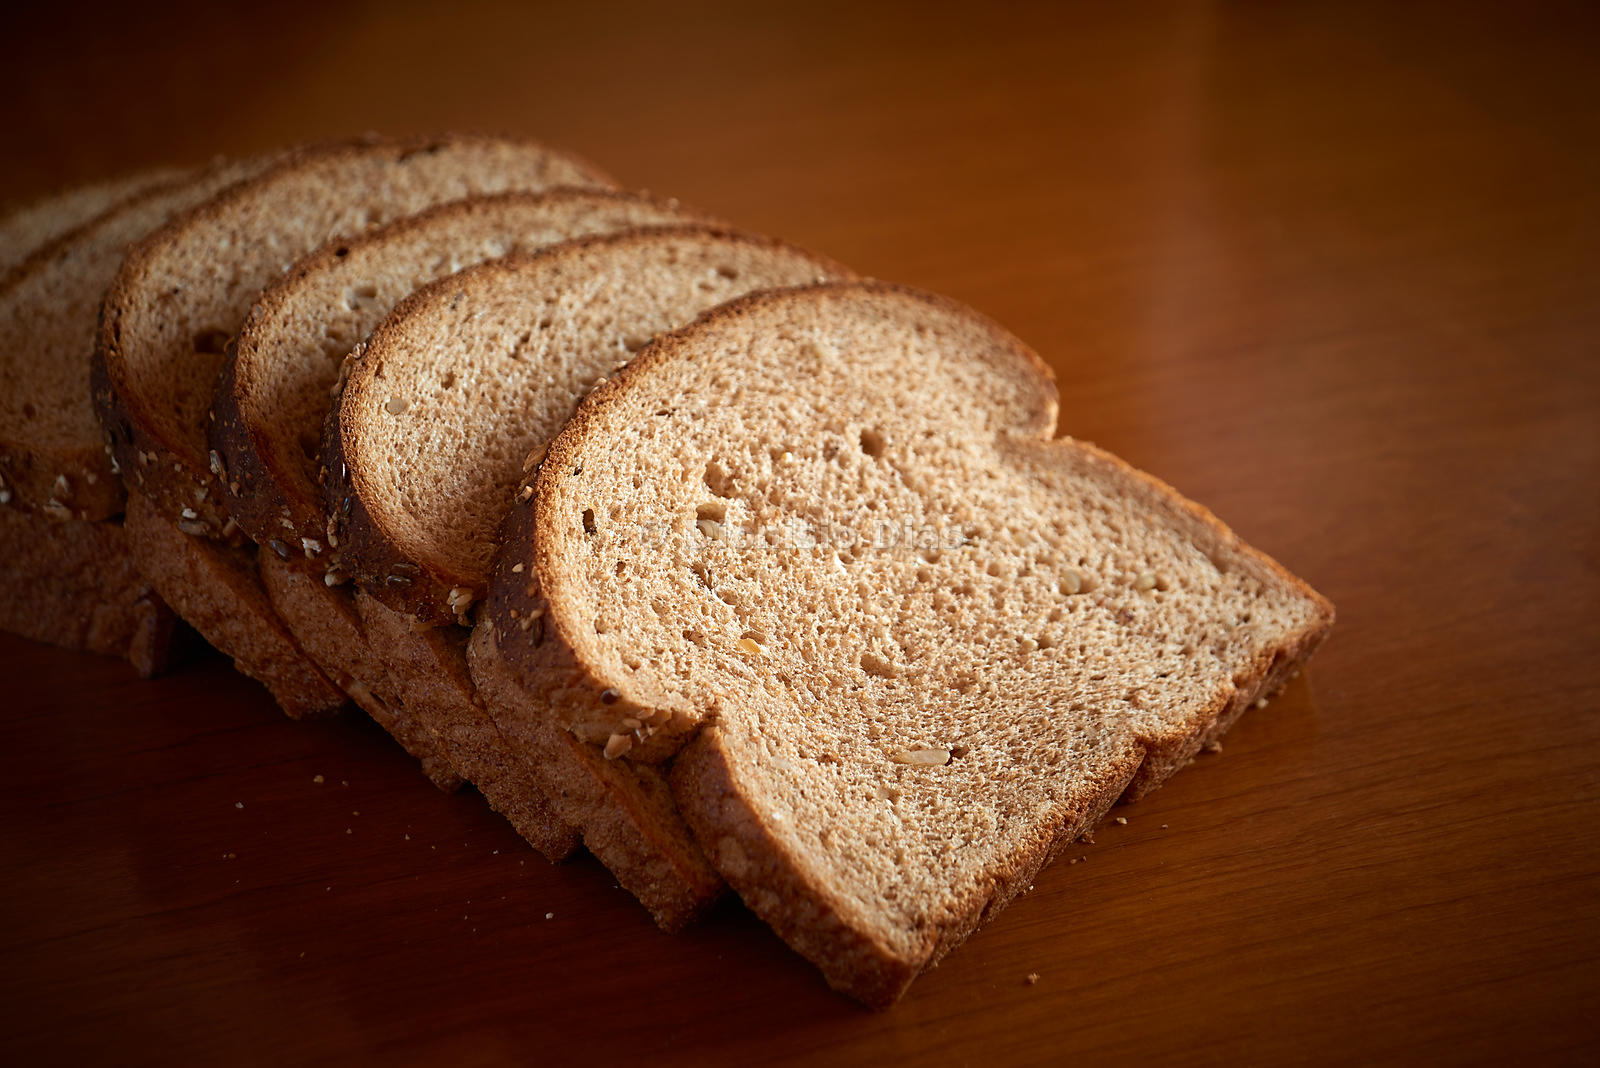 Photo of slices of whole bread